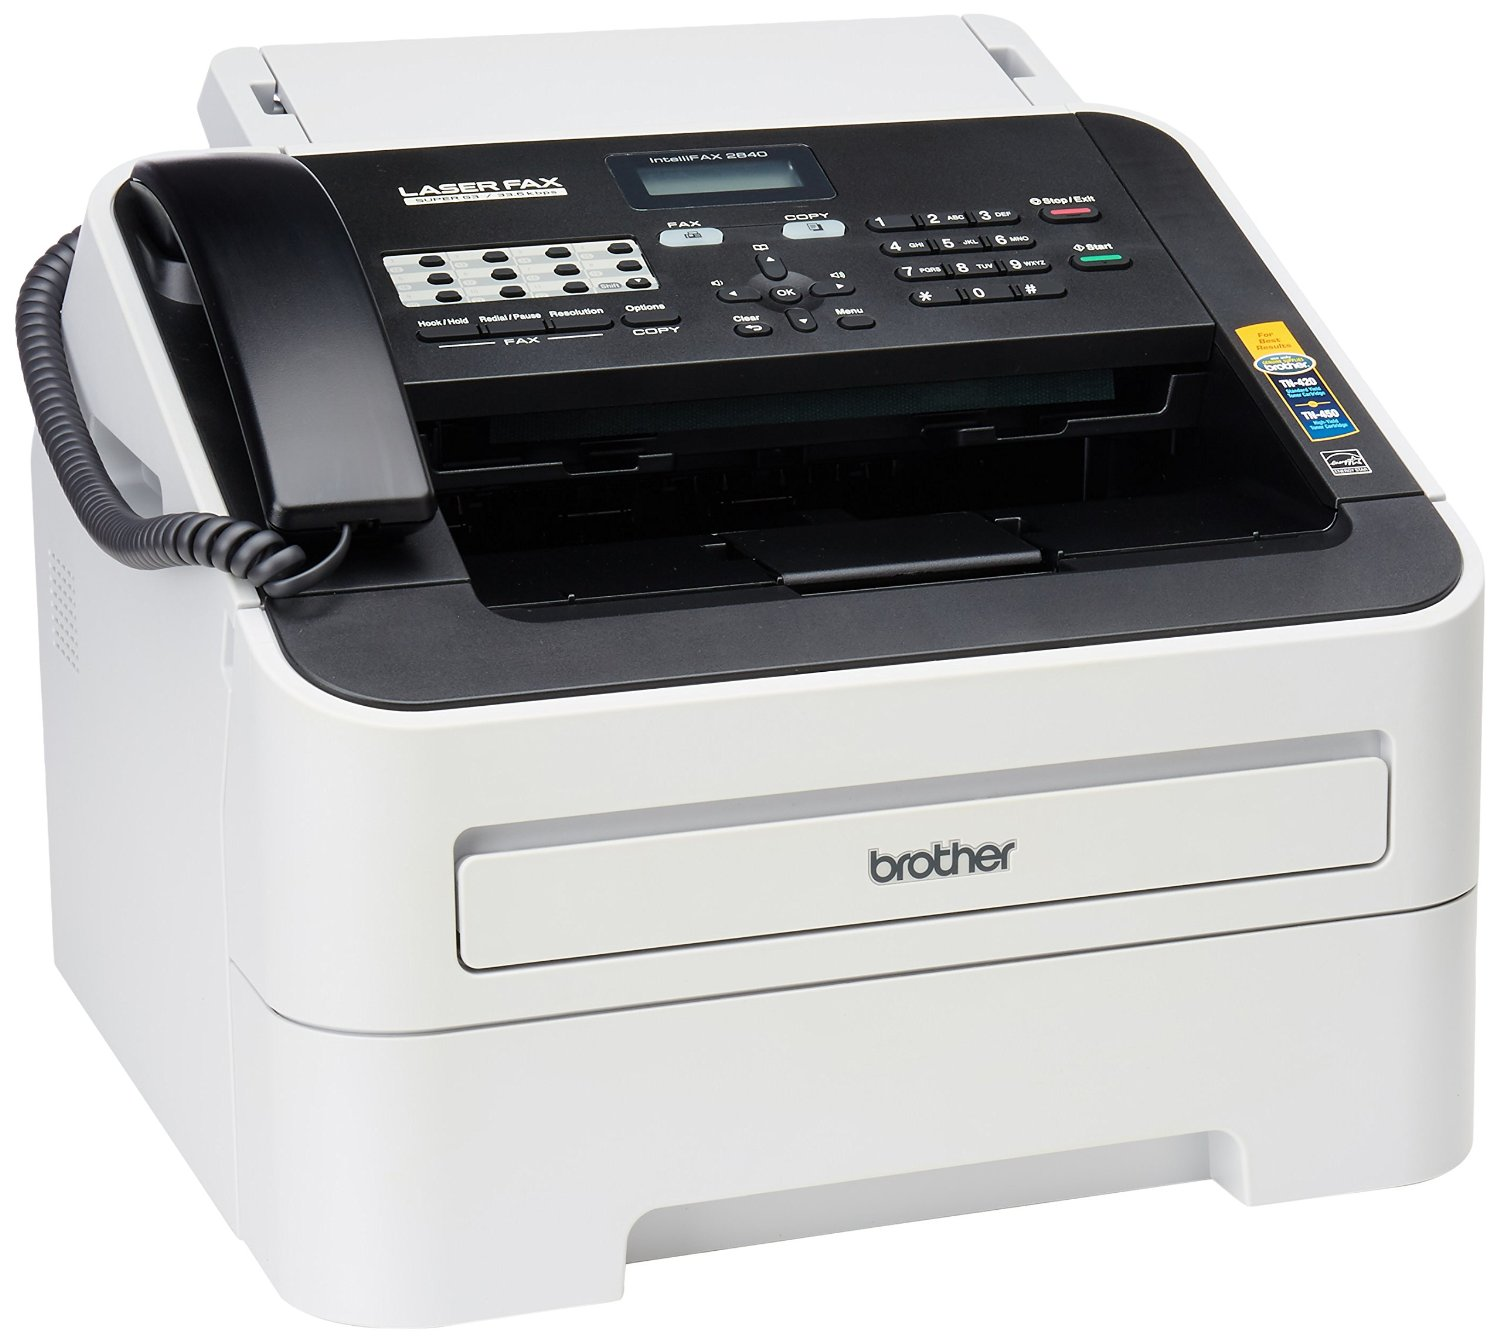 Best Fax Machine Reviews 2020 - DO NOT Buy Before Reading ...